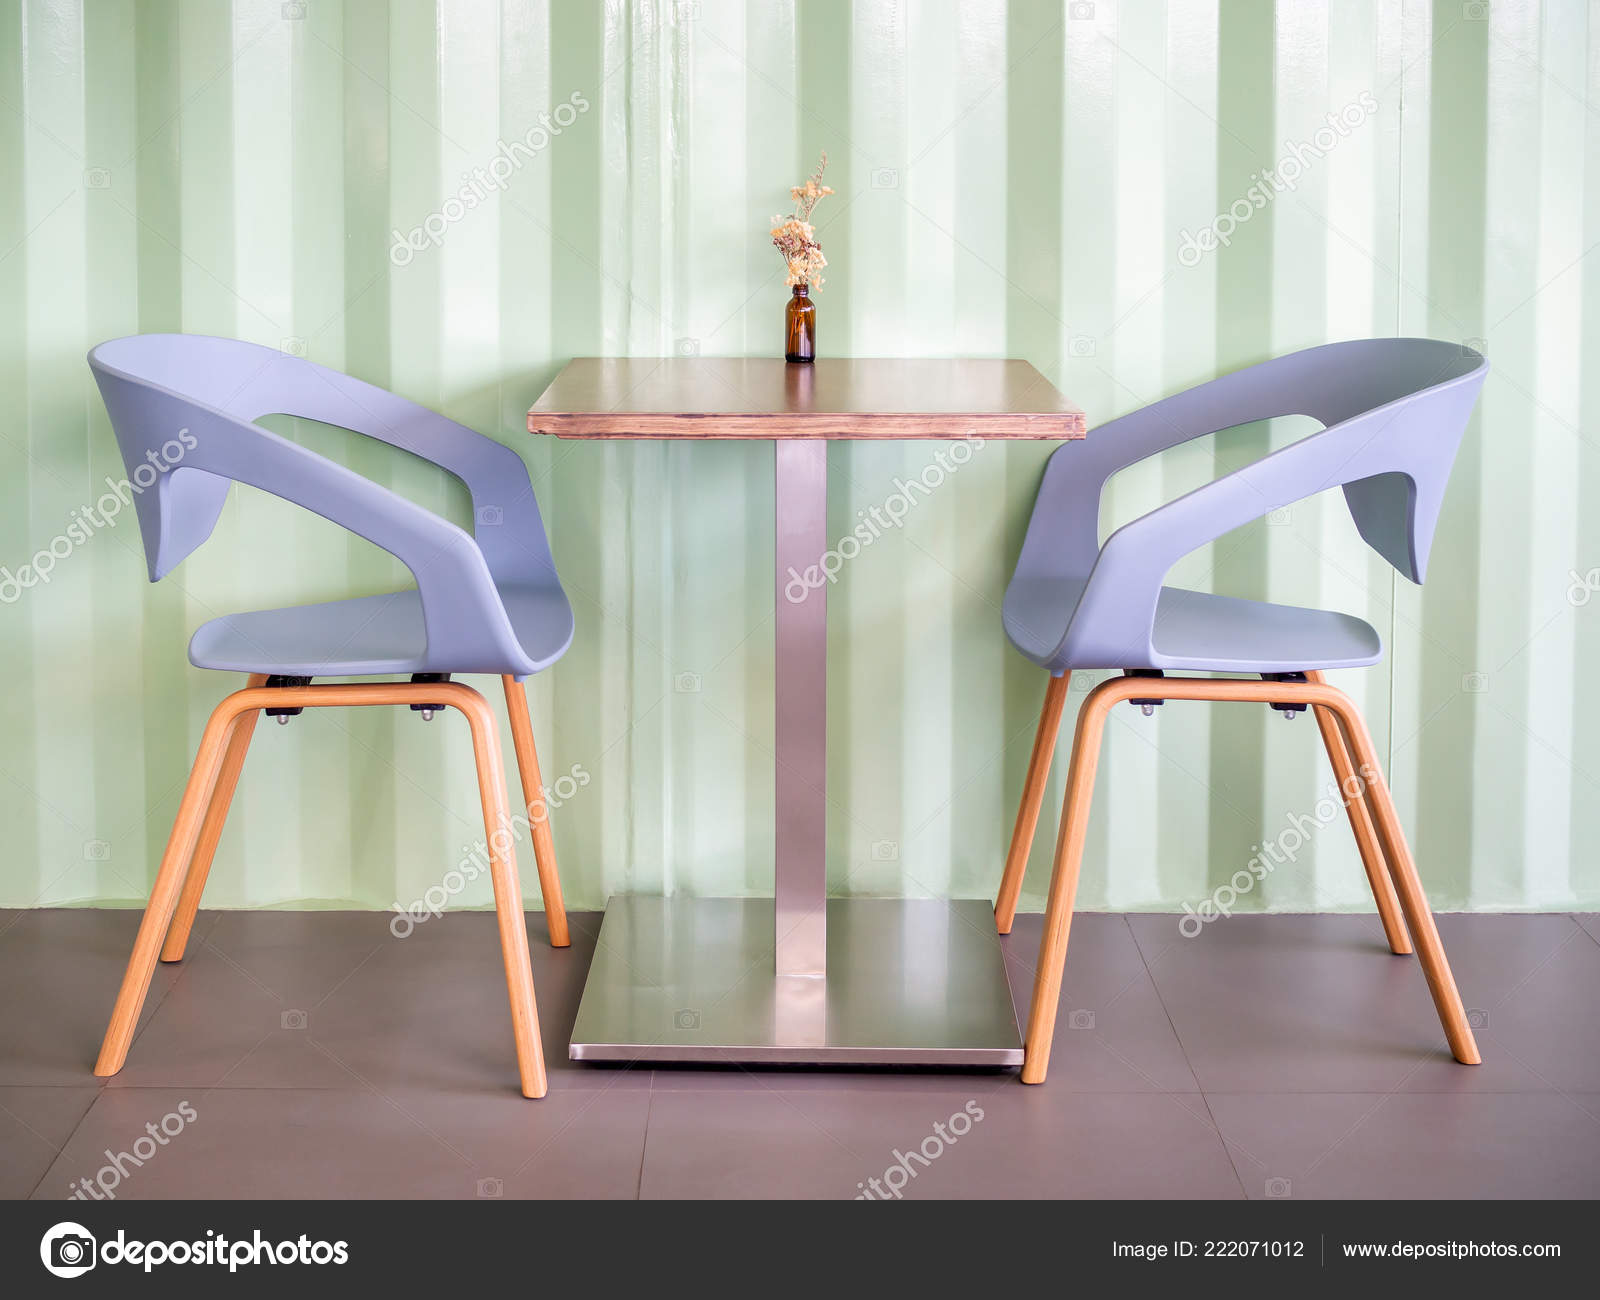 Modern Blue Chairs Wooden Table Light Green Shipping Container Wall Stock Photo C Tete Escape 222071012